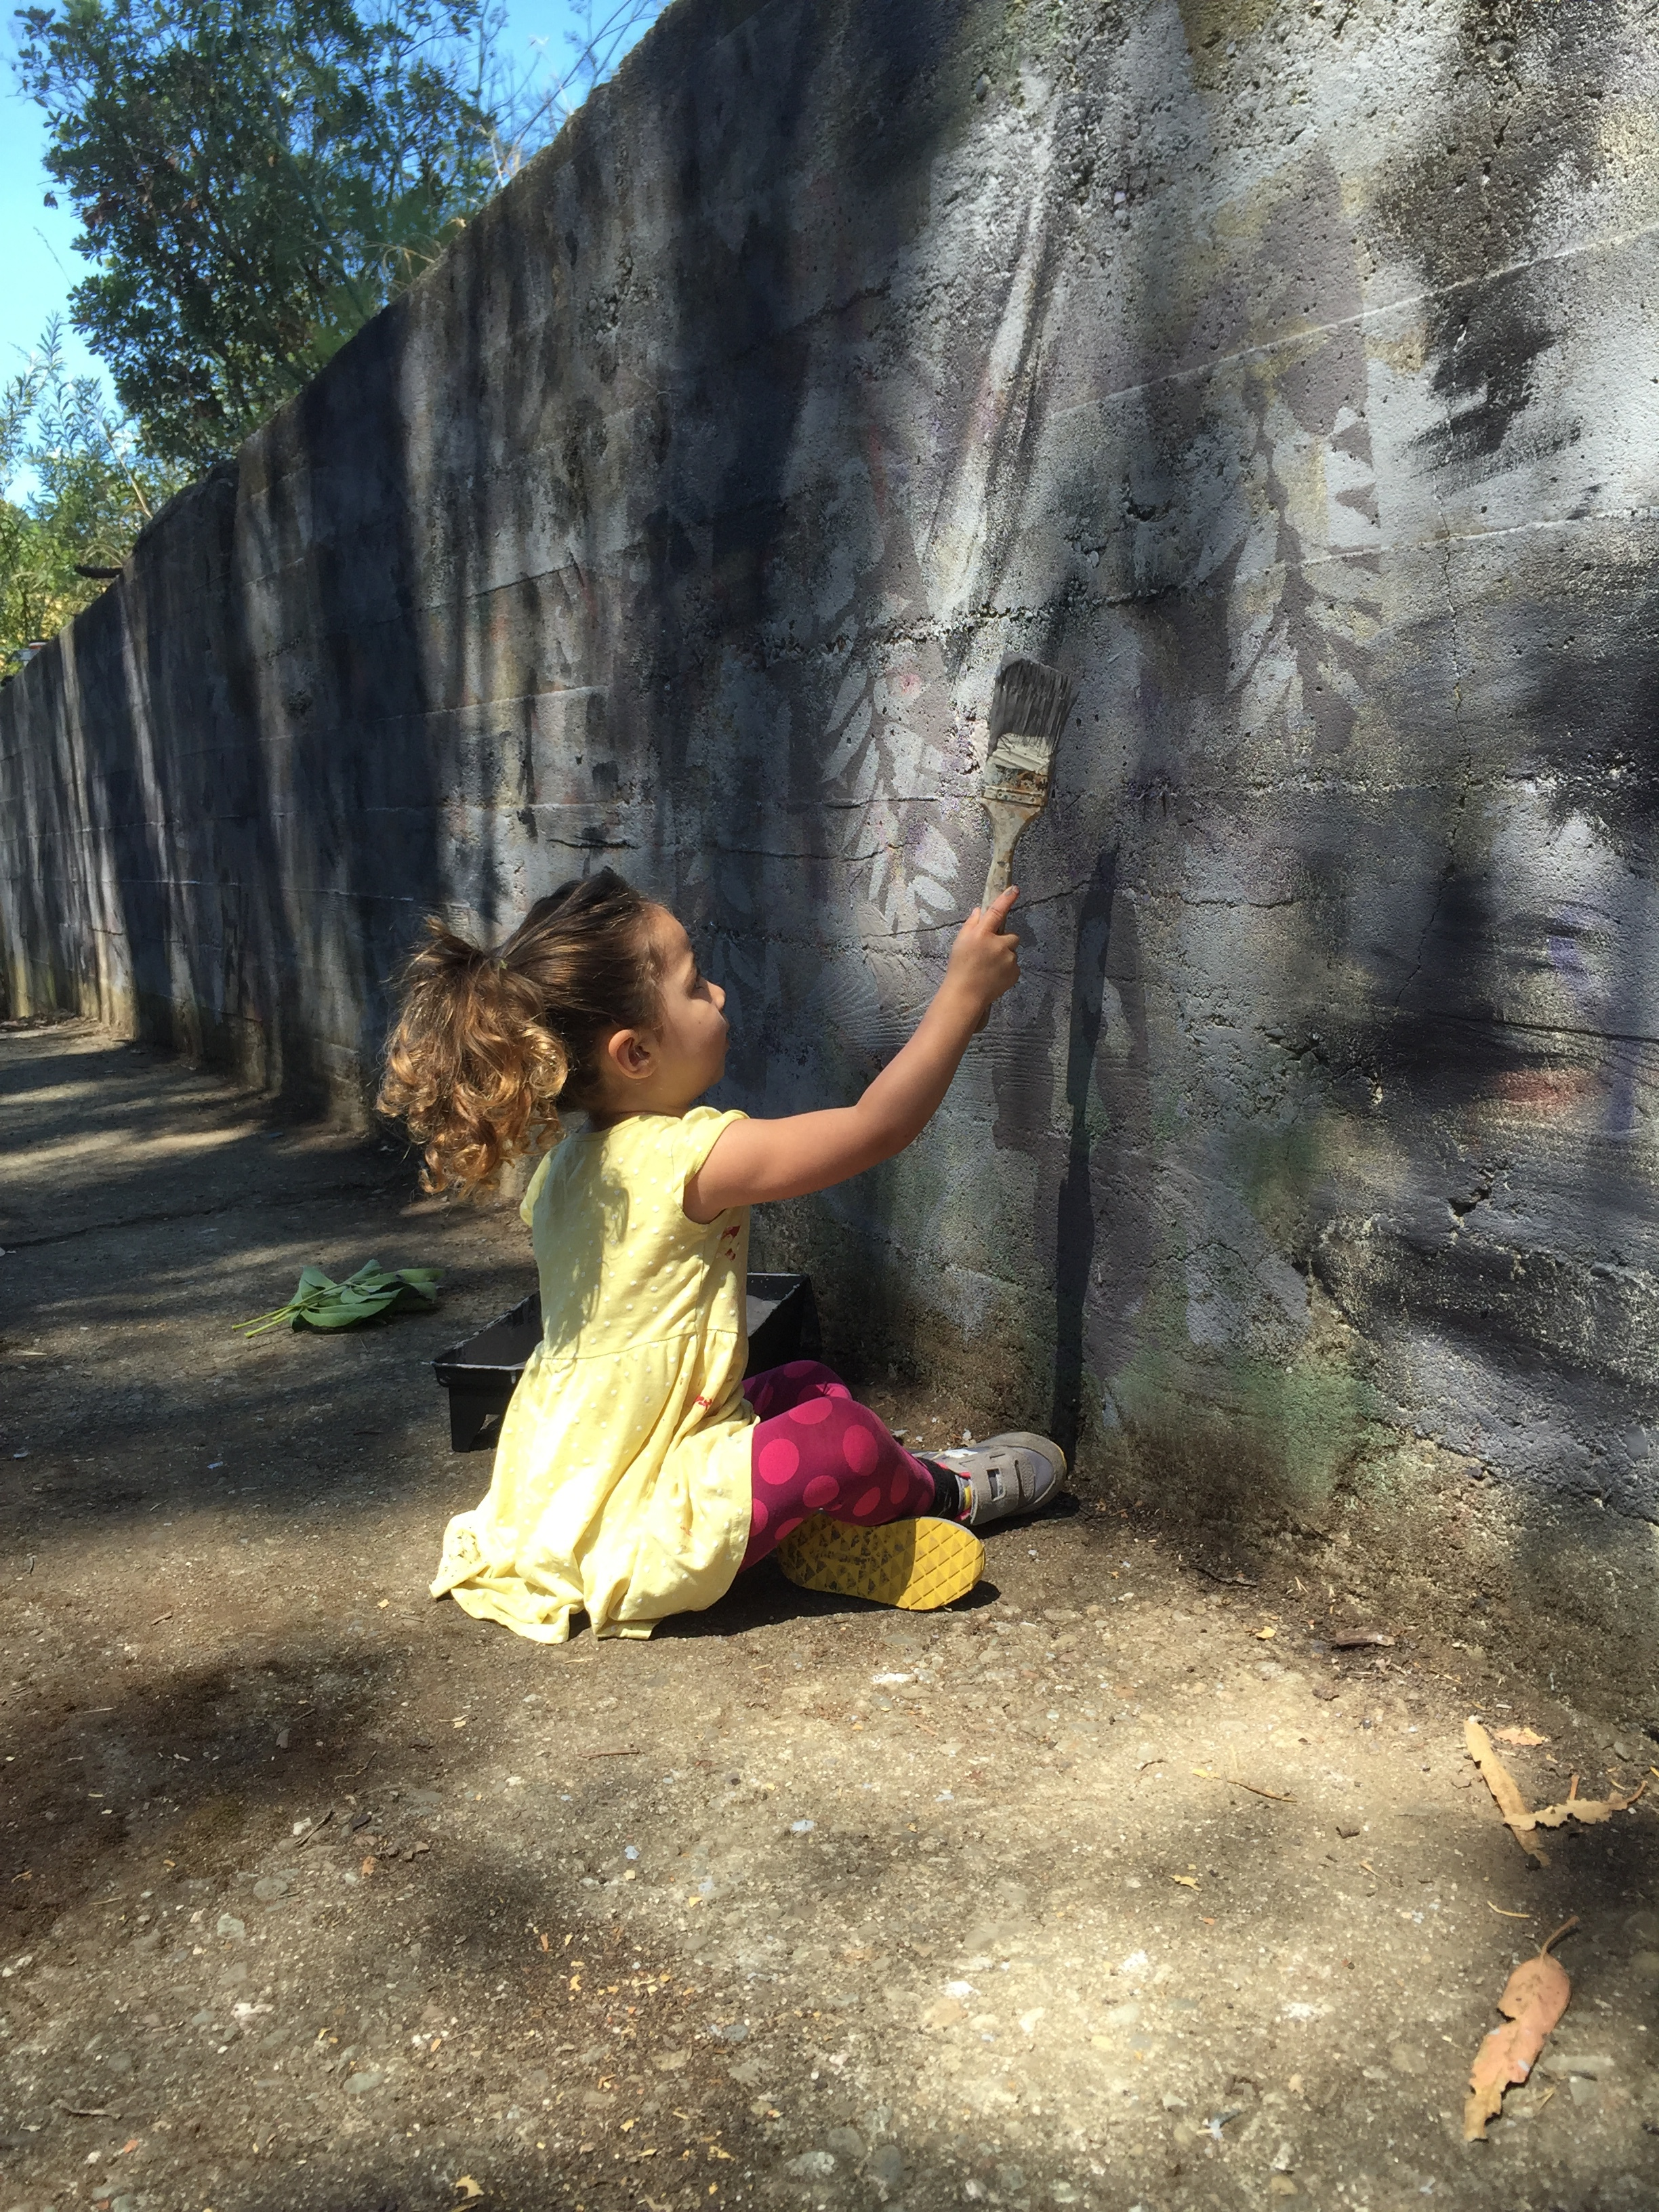 Lucy Shima taking things into her own hands painting over graffiti on the walls of BVAC's reservoir spillway.